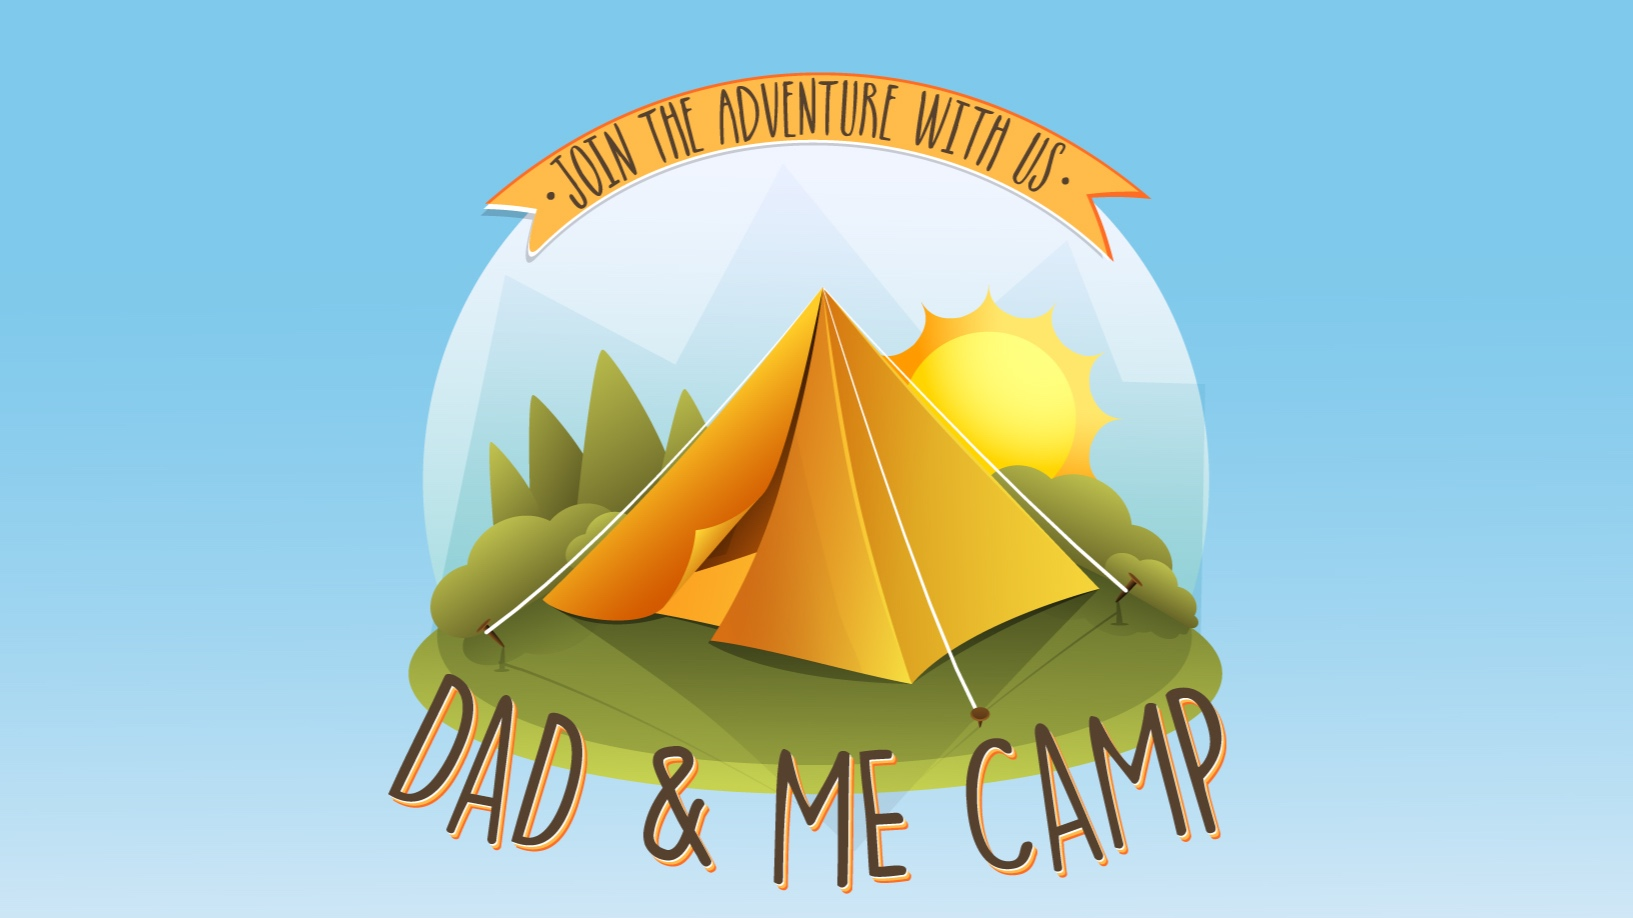 Dad & Me Camp is an overnight camping adventure for dads and kids June 21-23 near McMinnville! Dads and their kids will enjoy fishing supplied by a well stocked and expertly manned fishing camp, zip line, tree swing, games, hikes, canoeing, more fishing! The Great Boat Race, night games, campfire, and s'mores. Tickets include the cost of the retreat, activities, supplies and meals. The suggested age for kids taking part in Dad & Me Camp activities is 5+. Click below to register!  Please fill out  Long Mountain's Release Form  and bring it with you to the event.